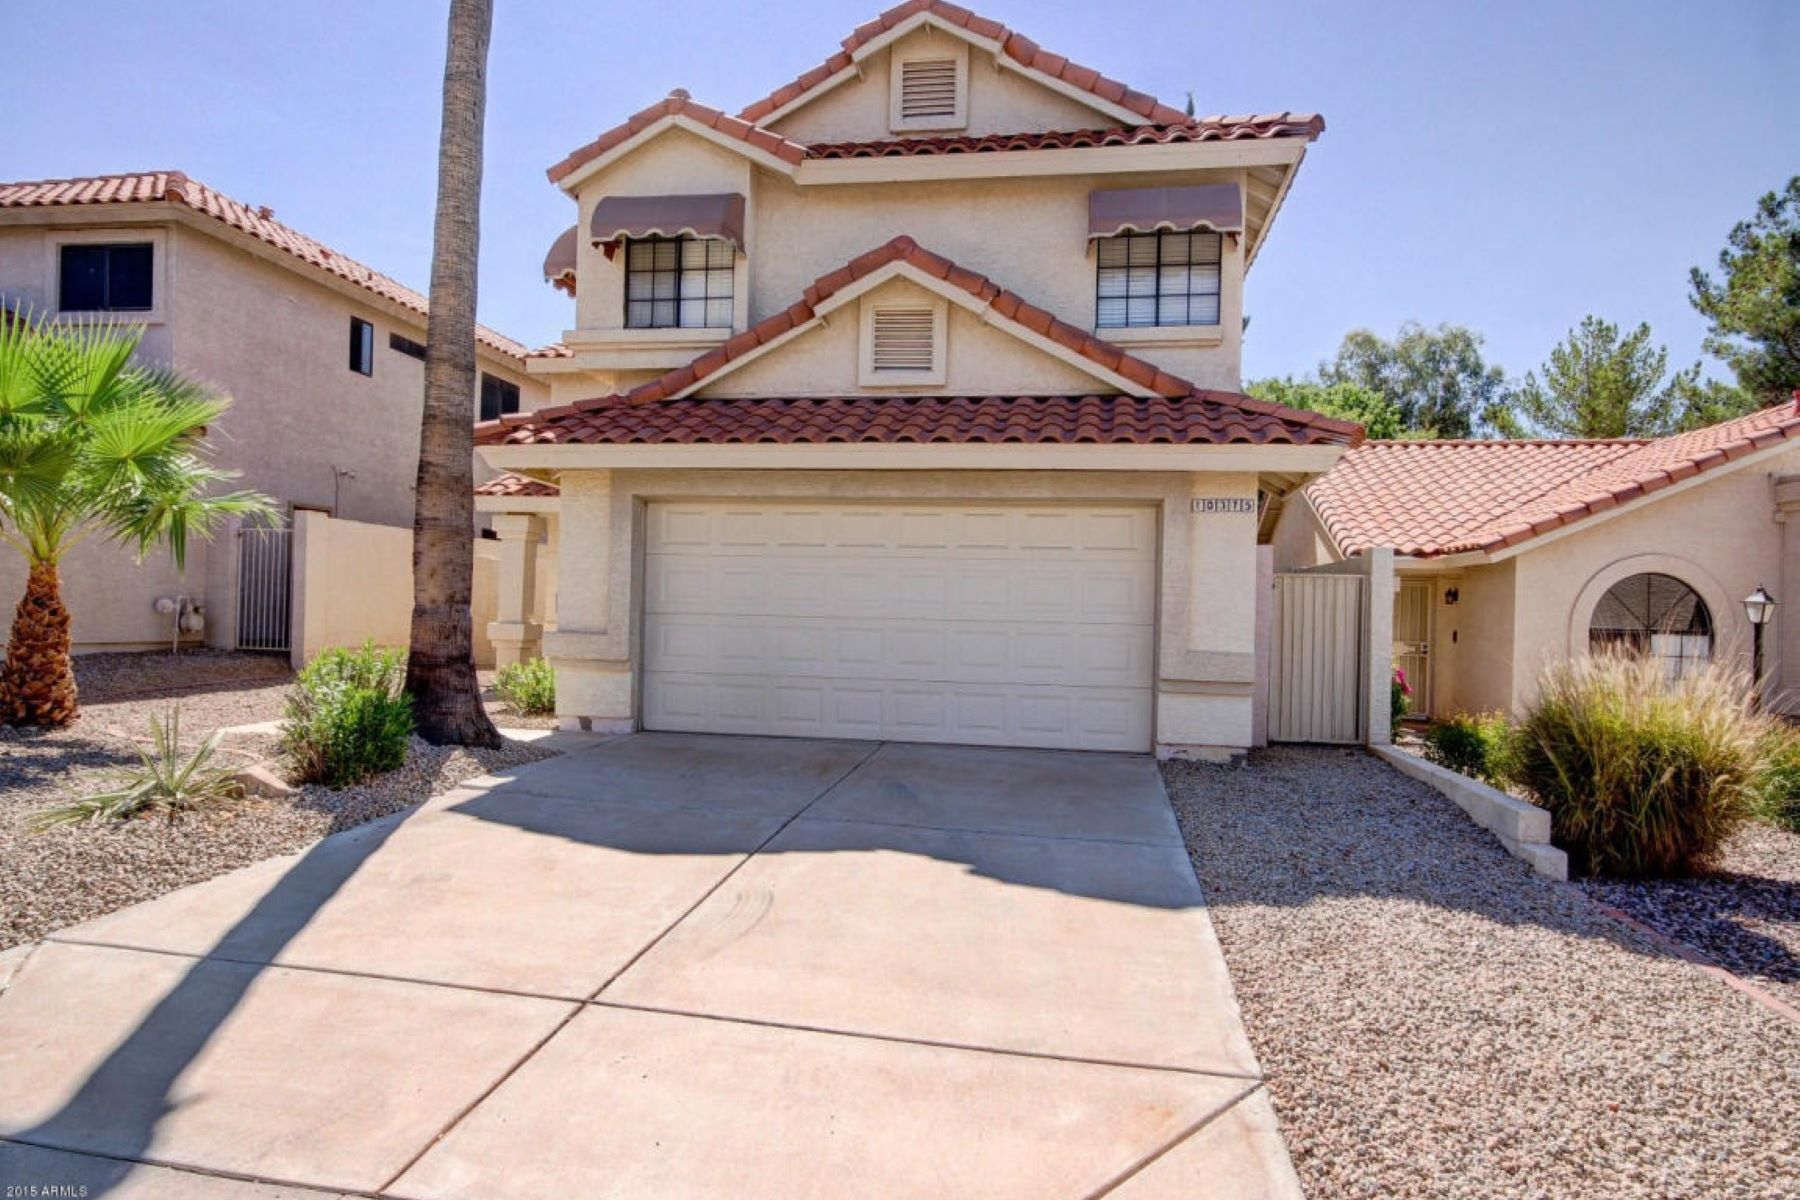 Condominium for Sale at Newly remodeled 4 bedroom 2.5 bathroom two story home. 10375 E Sharon Drive Scottsdale, Arizona, 85260 United States